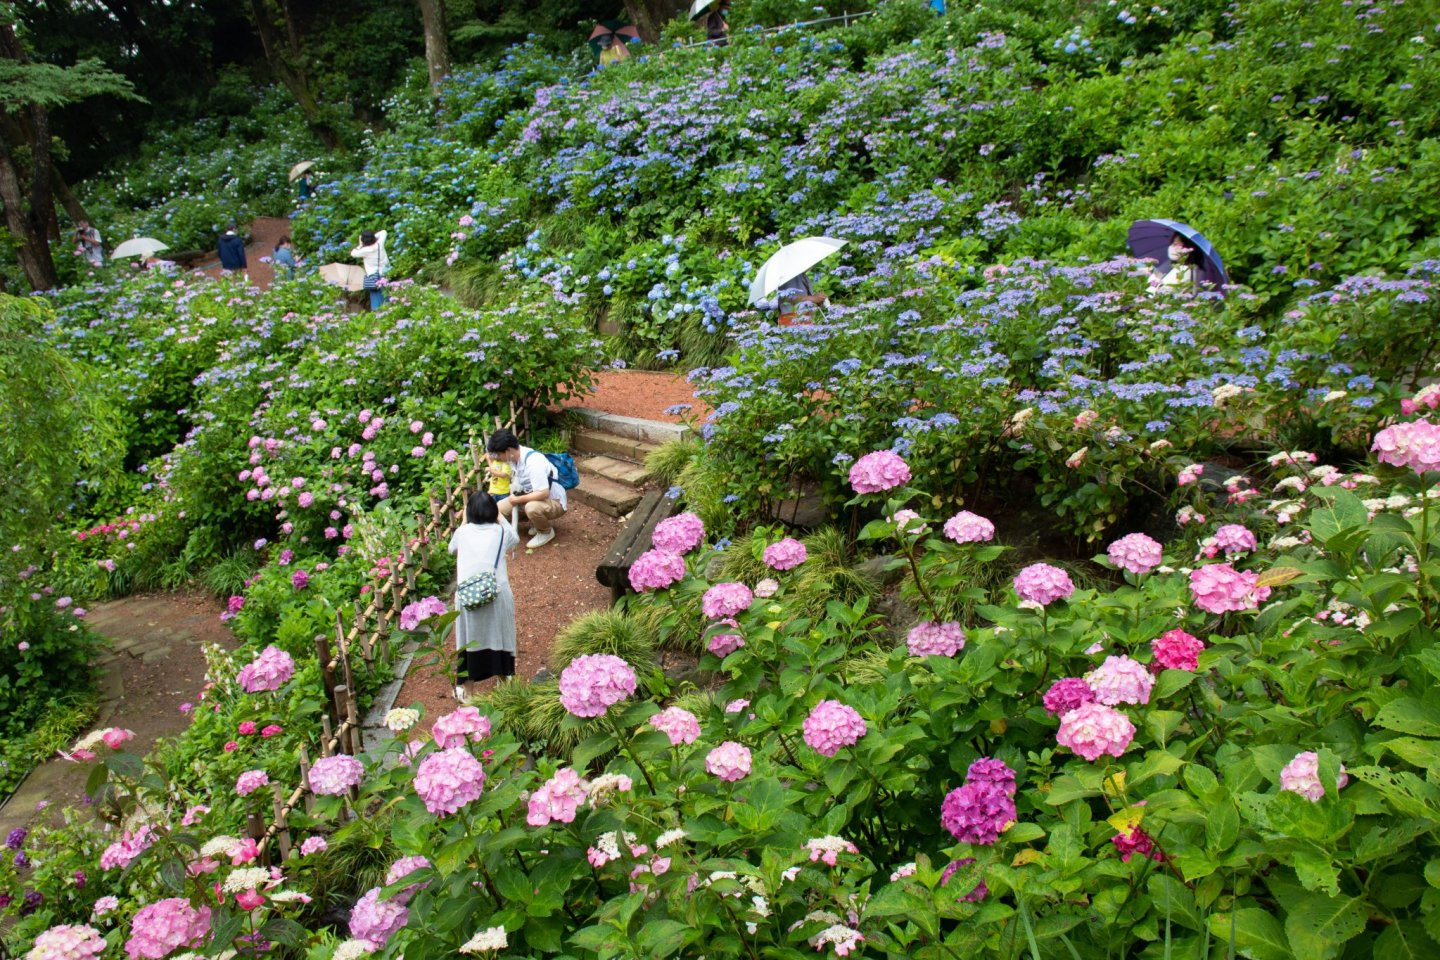 Around 10,000 hydrangeas in 70 varieties are found on the temple grounds here